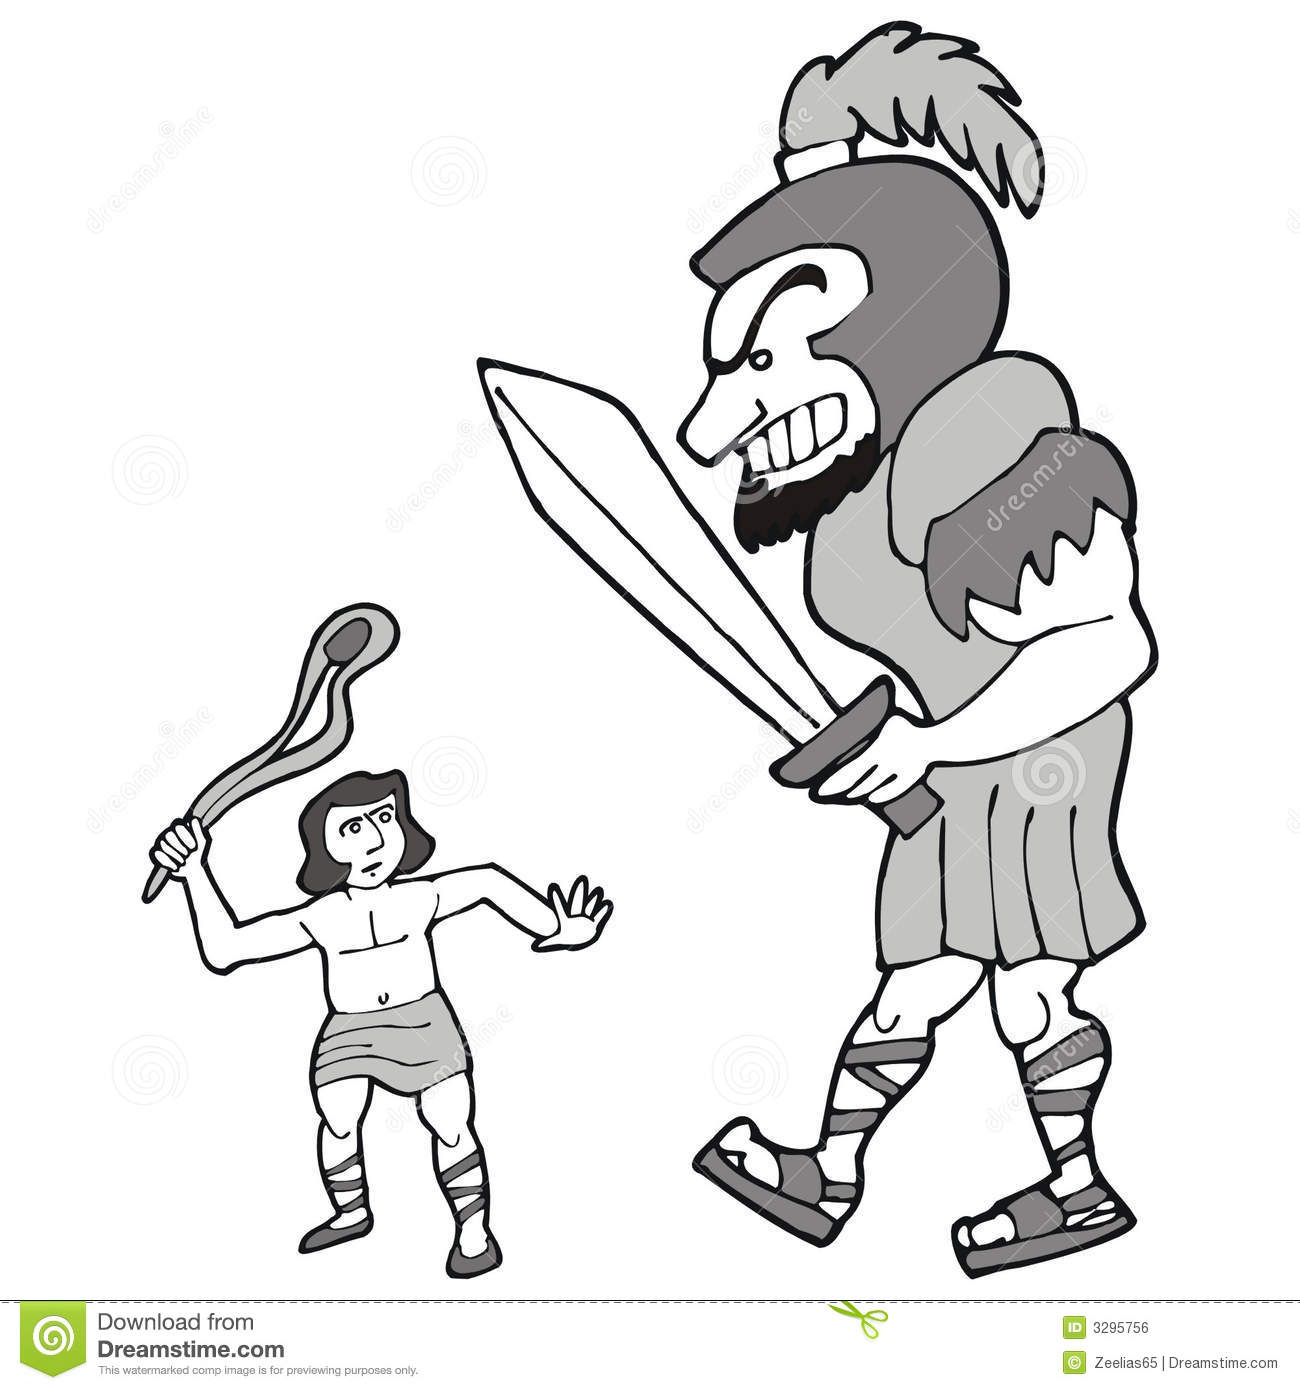 Free Coloring Pages Of David Vs Goliath